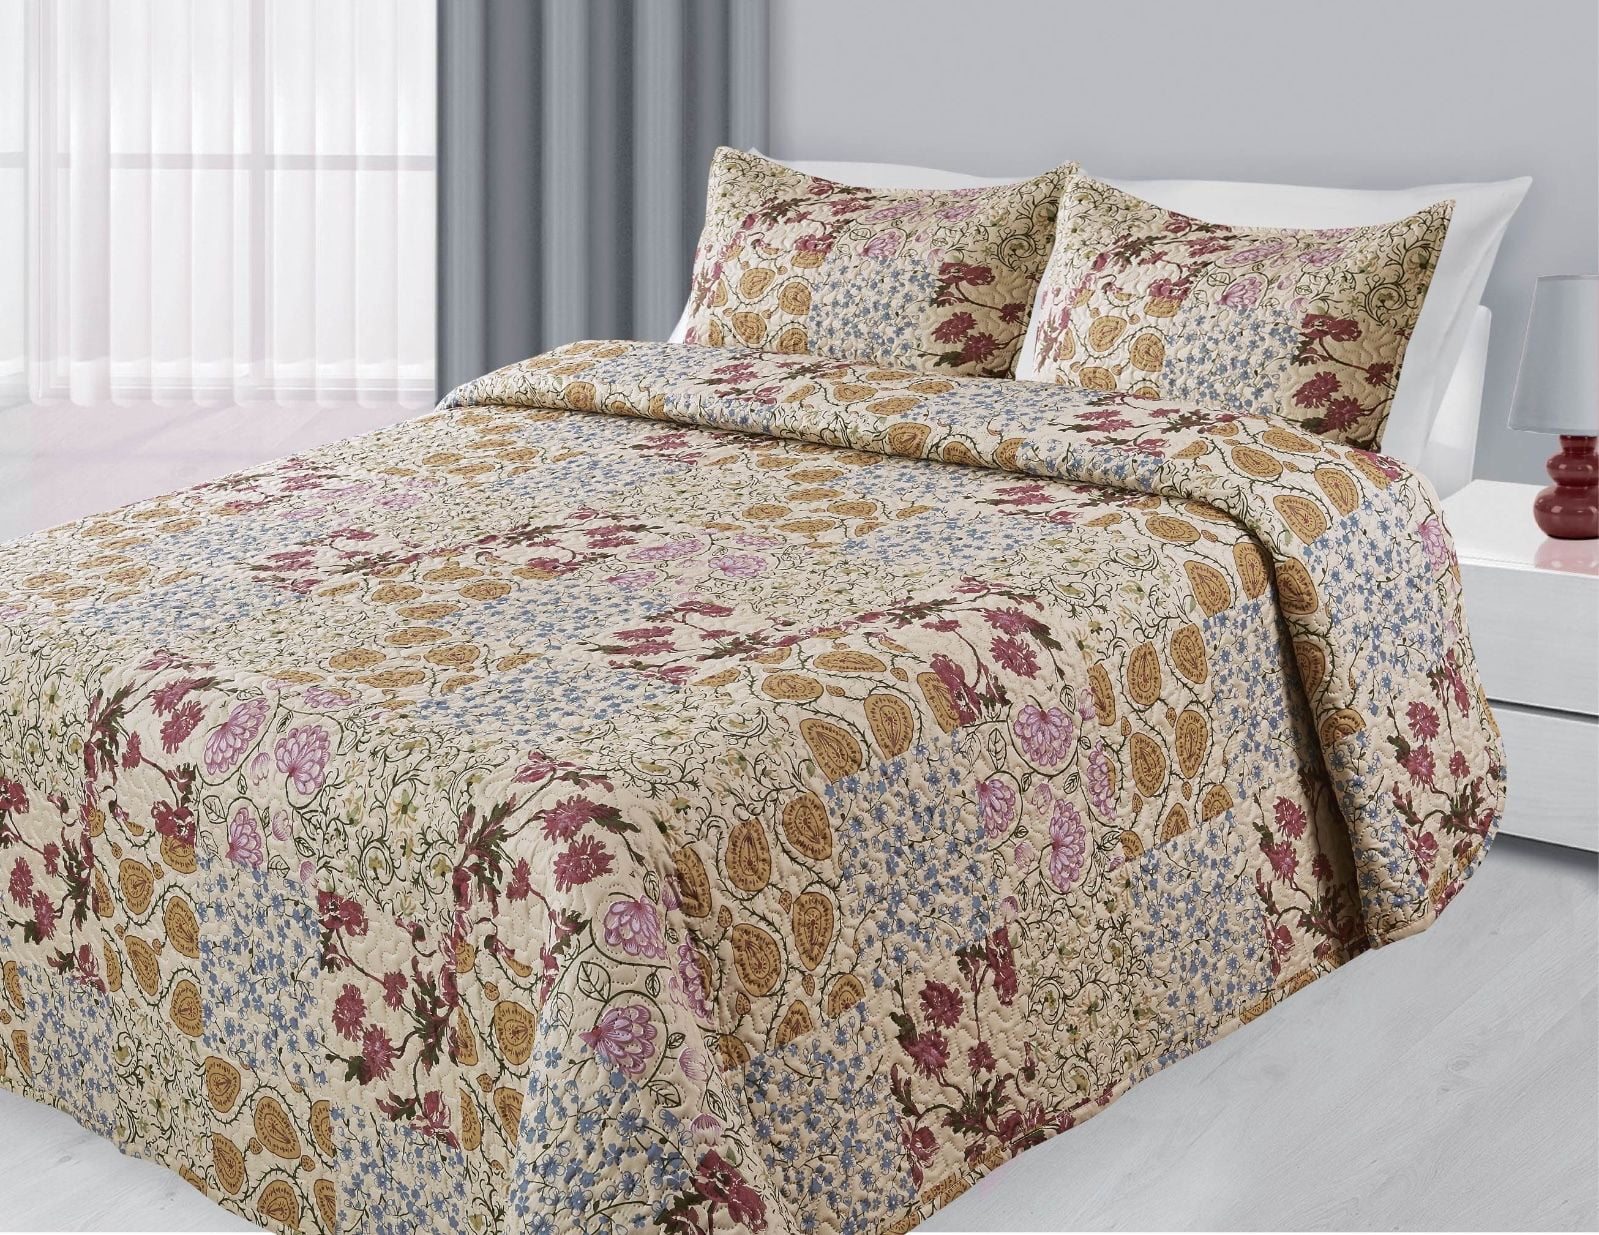 3-Piece Reversible Quilted Printed Bedspread Coverlet Beige Patchwork Flowers Queen Size by